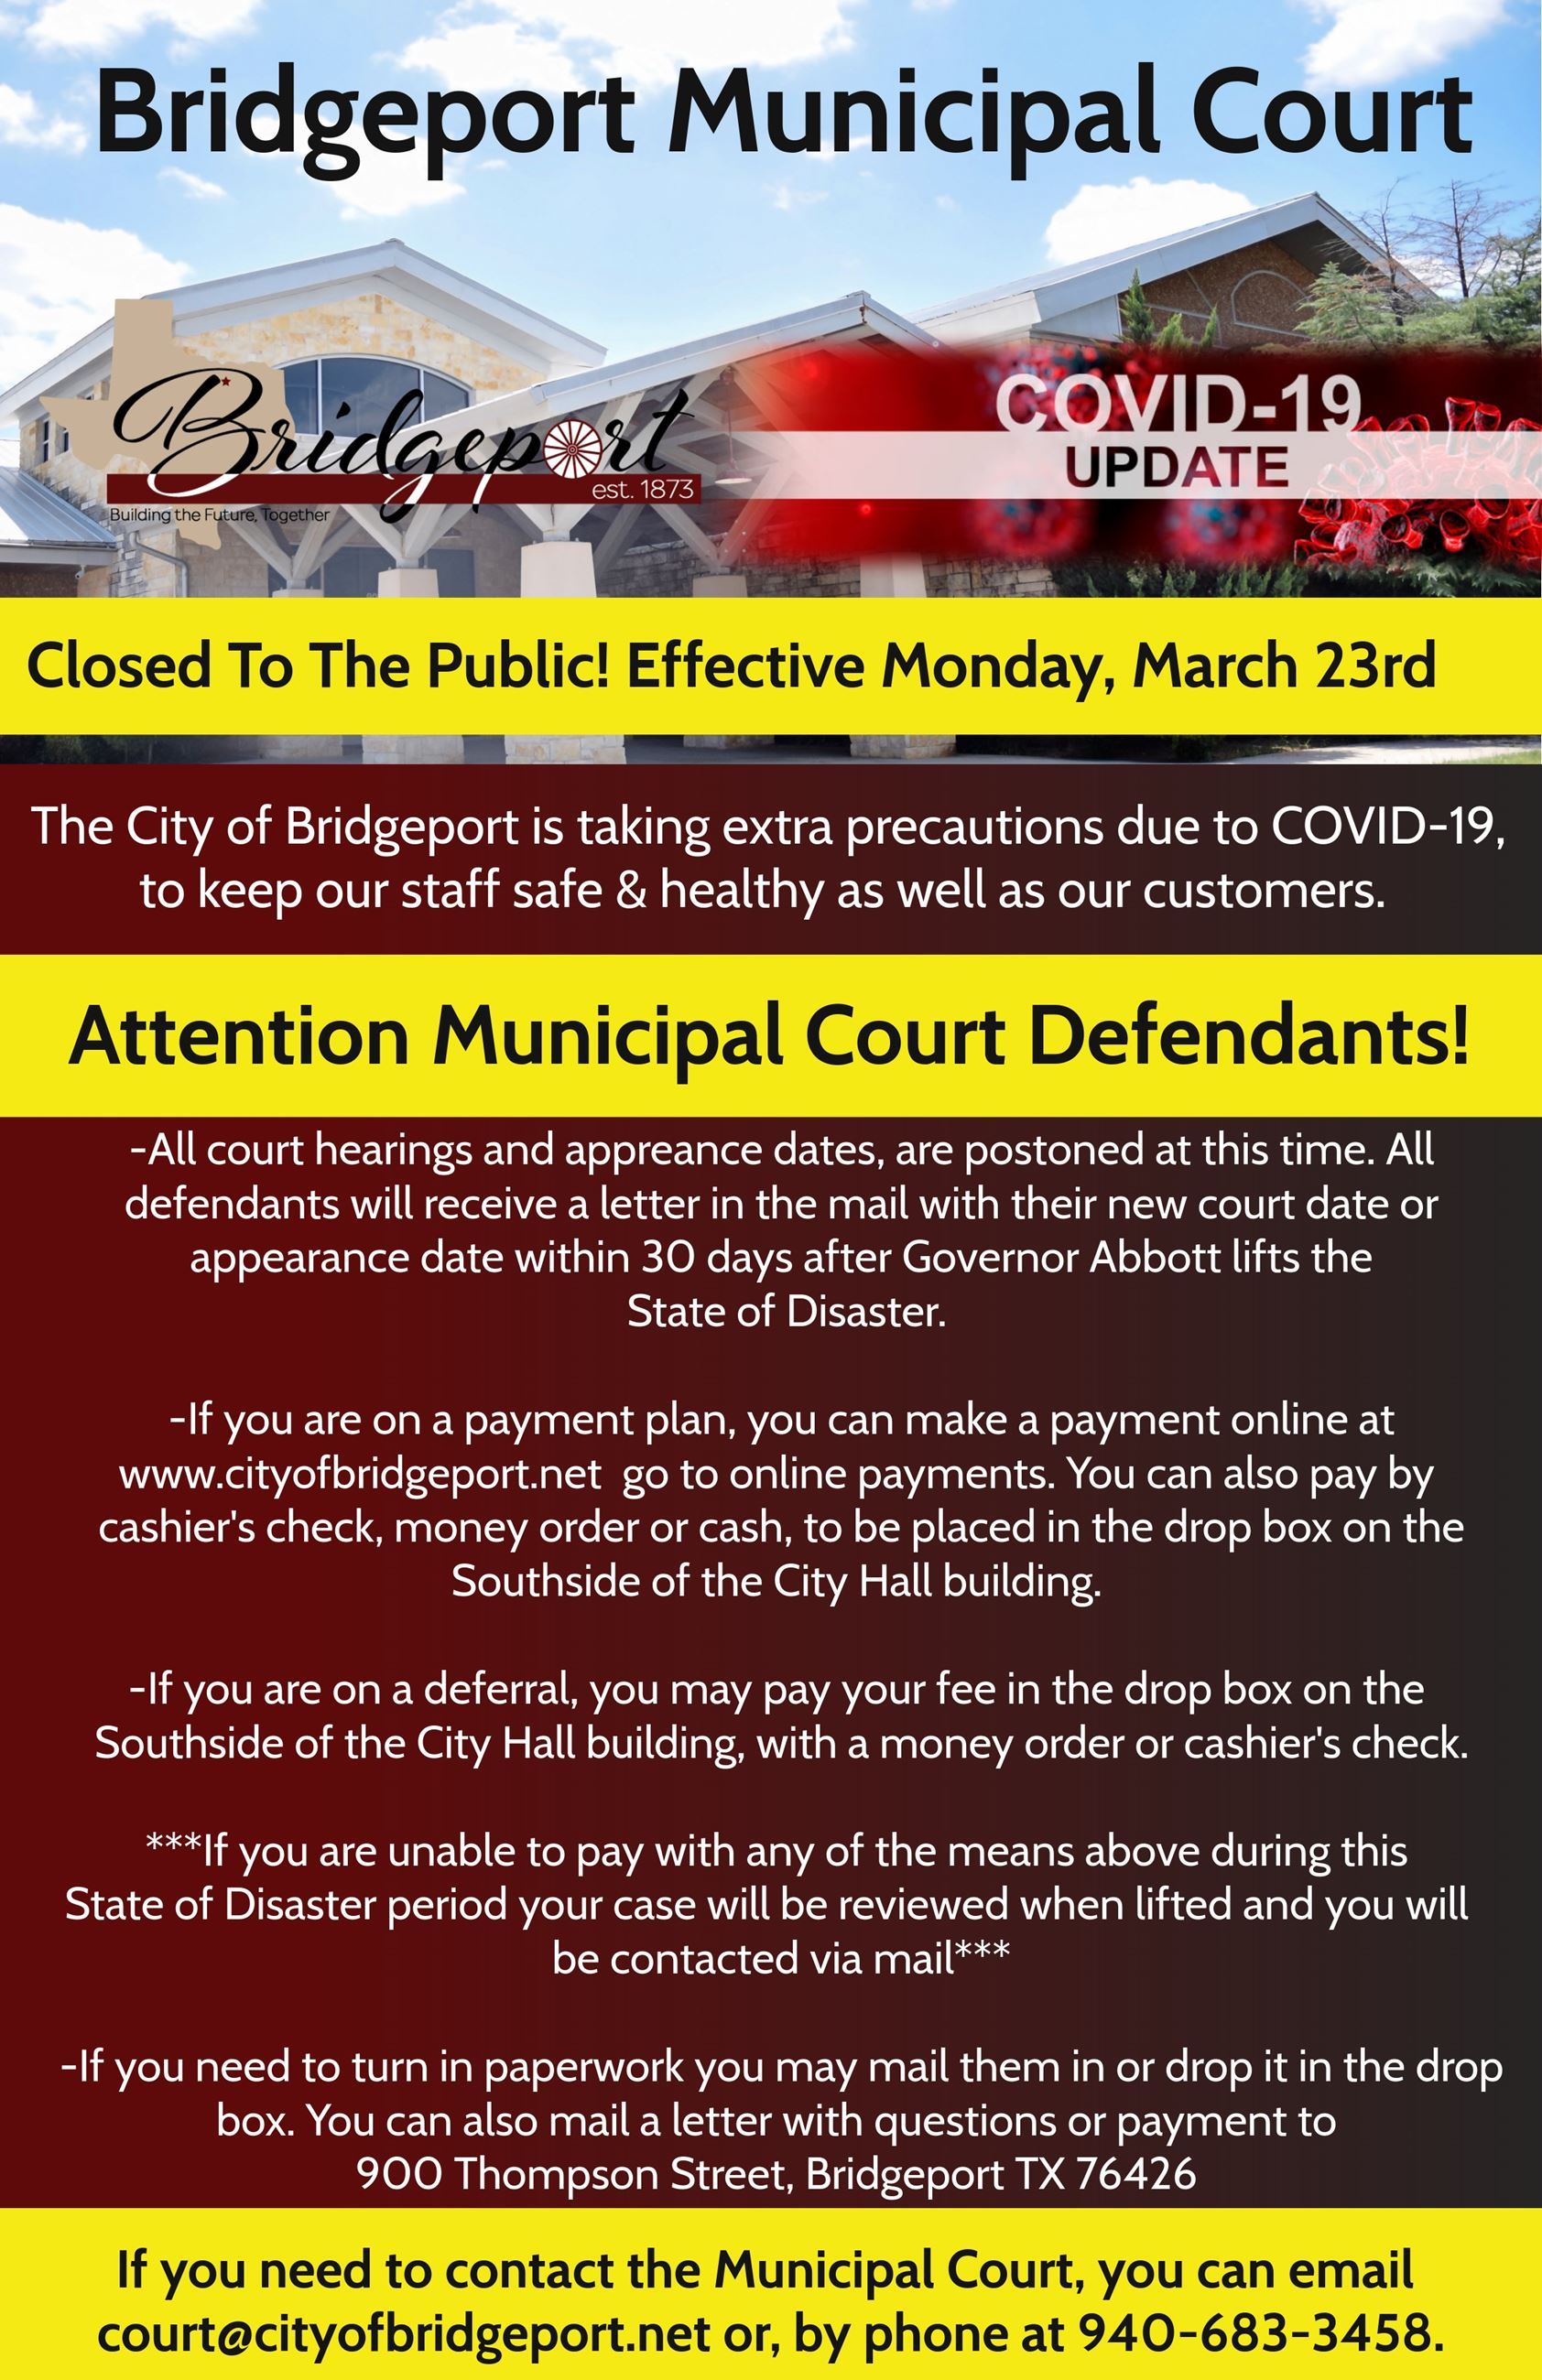 COVID-19 Court Closure to Public